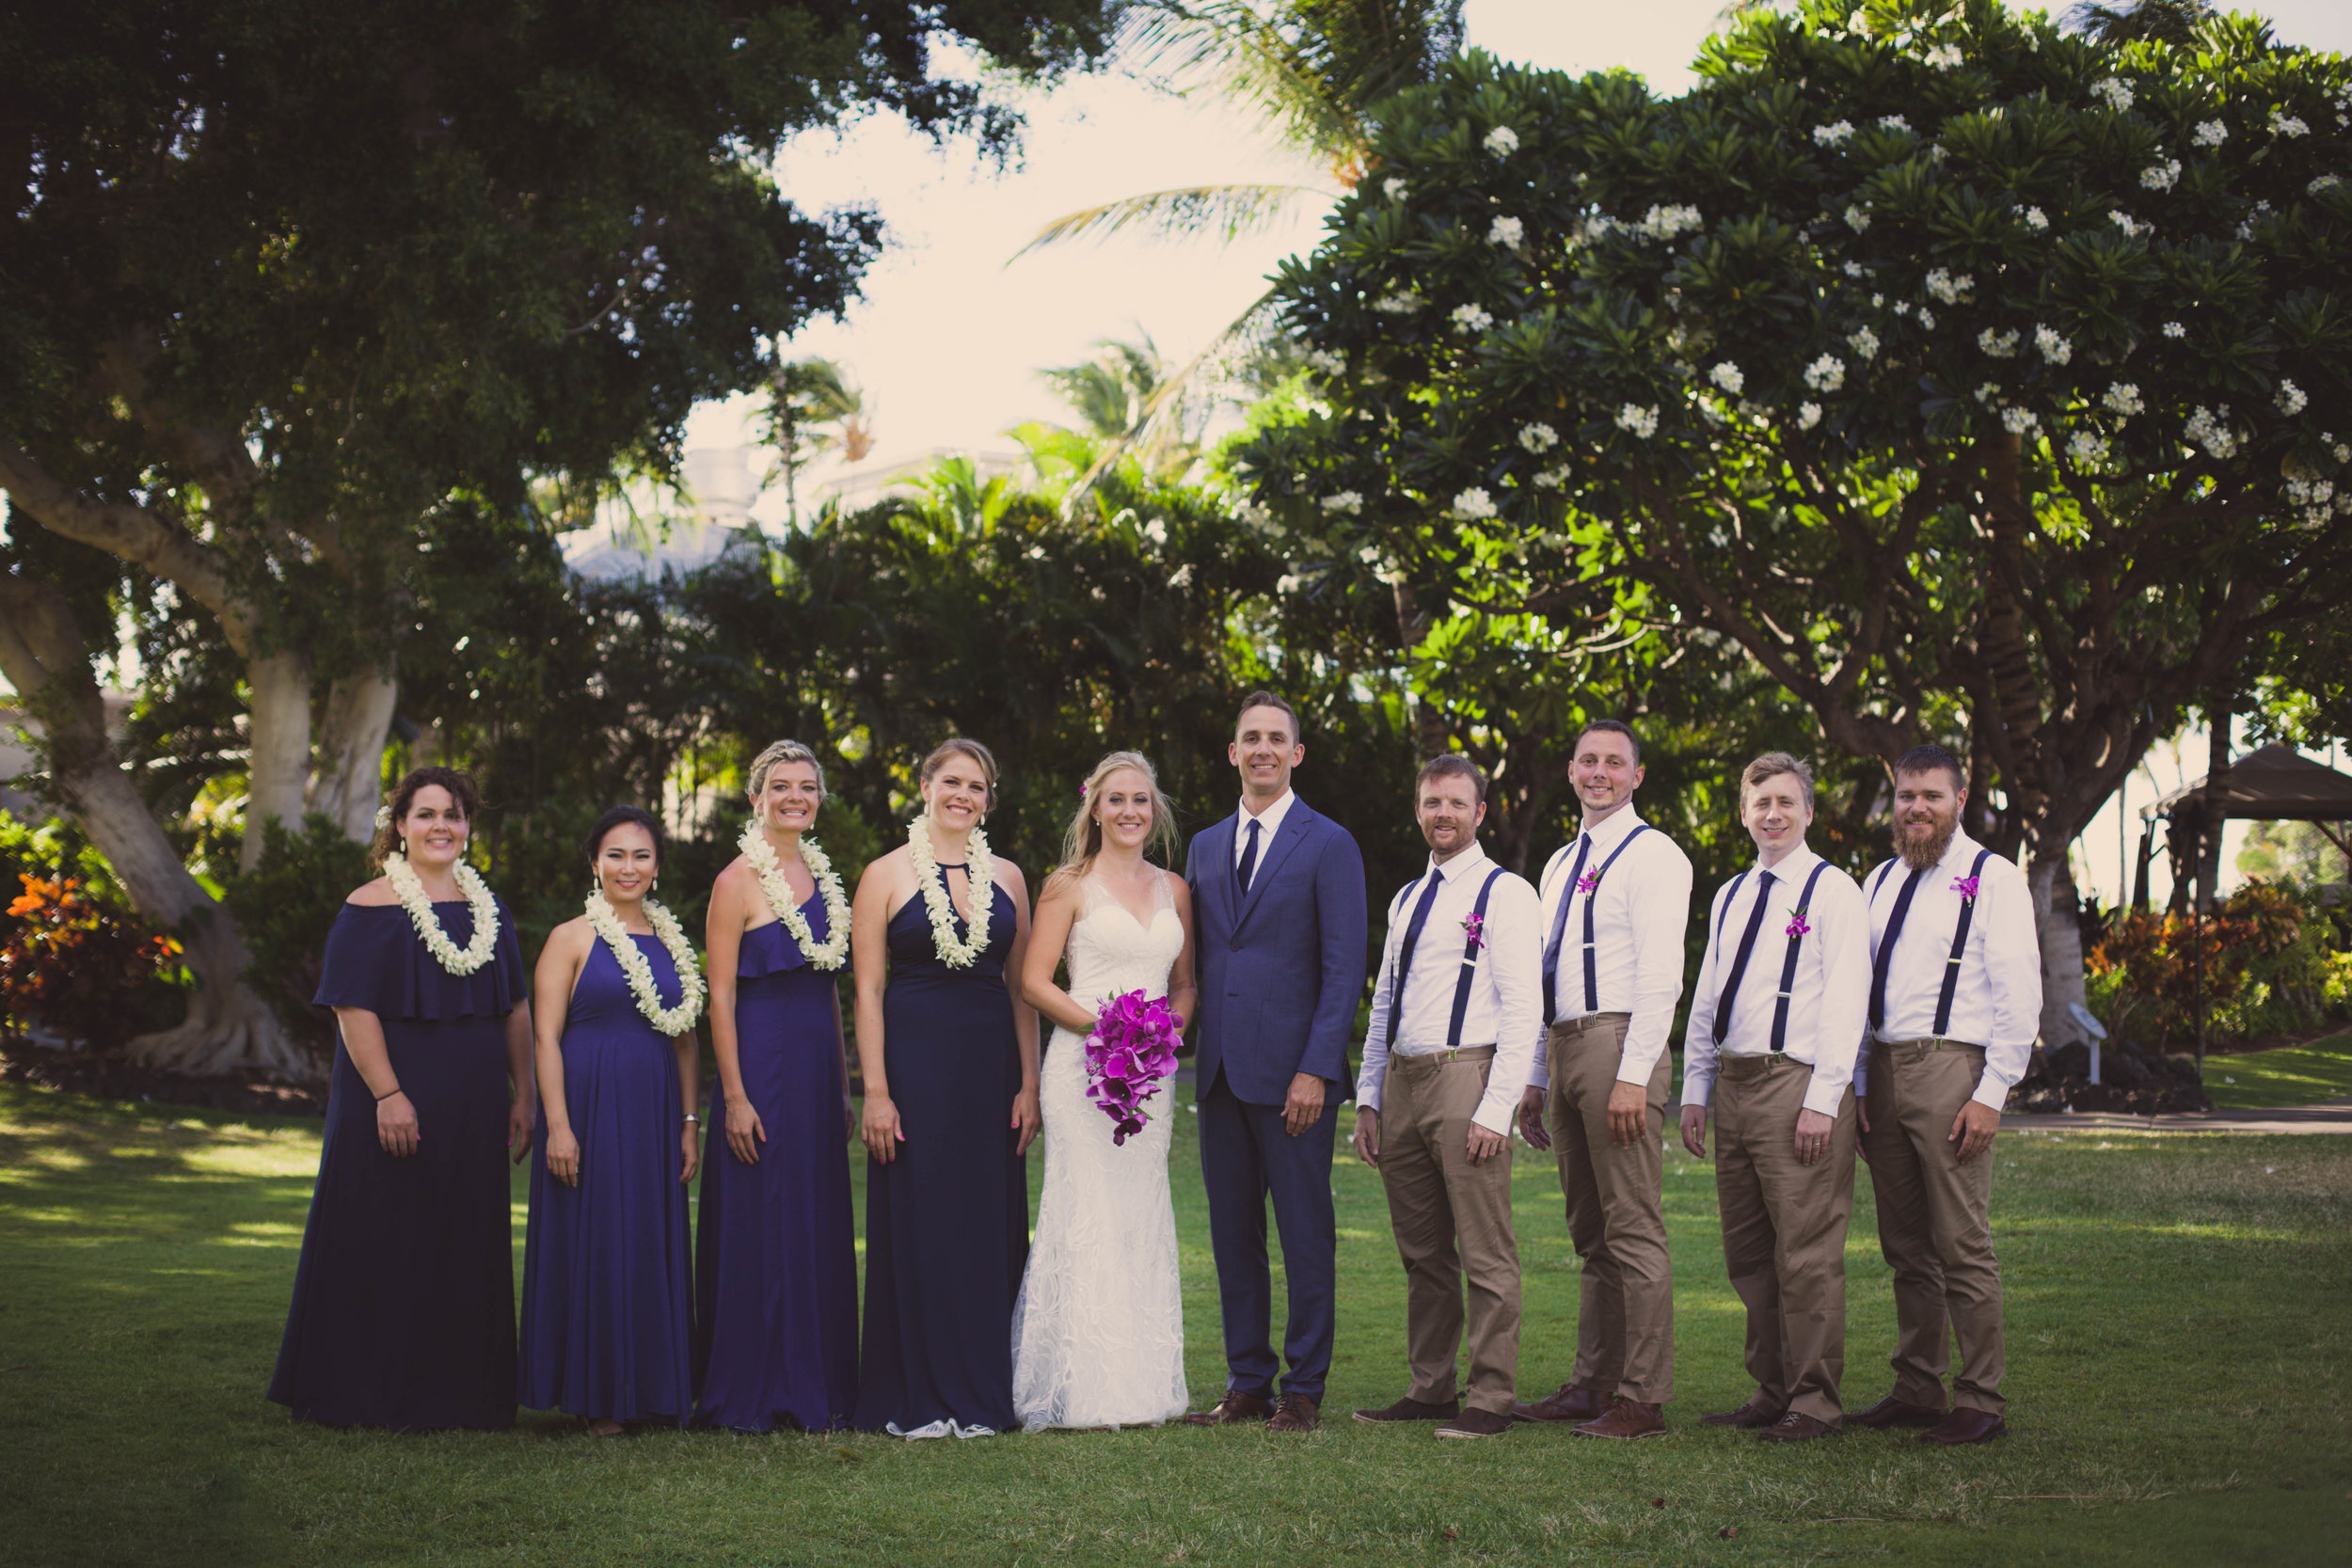 big island hawaii fairmont orchid beach wedding © kelilina photography 20170812170151-1.jpg